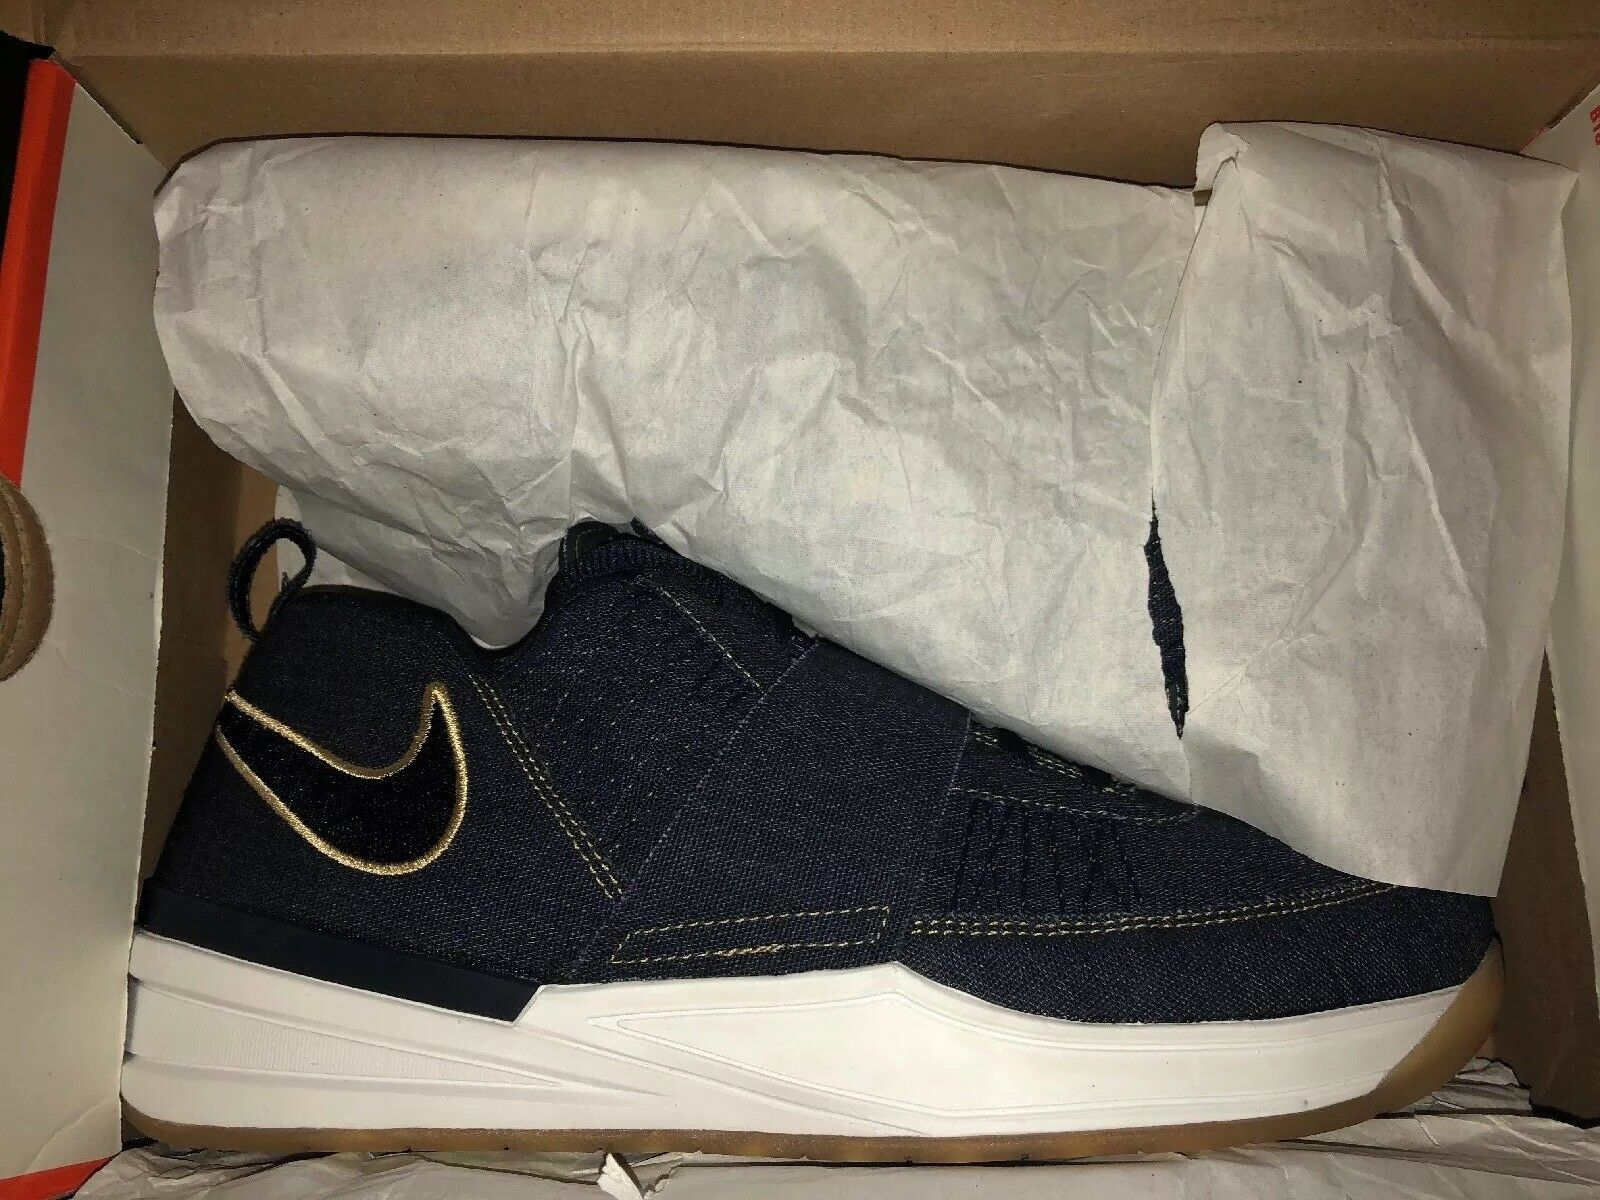 Nike Zoom Revis LE Denim Size 10.5. 623978-400. of 224 pairs made.